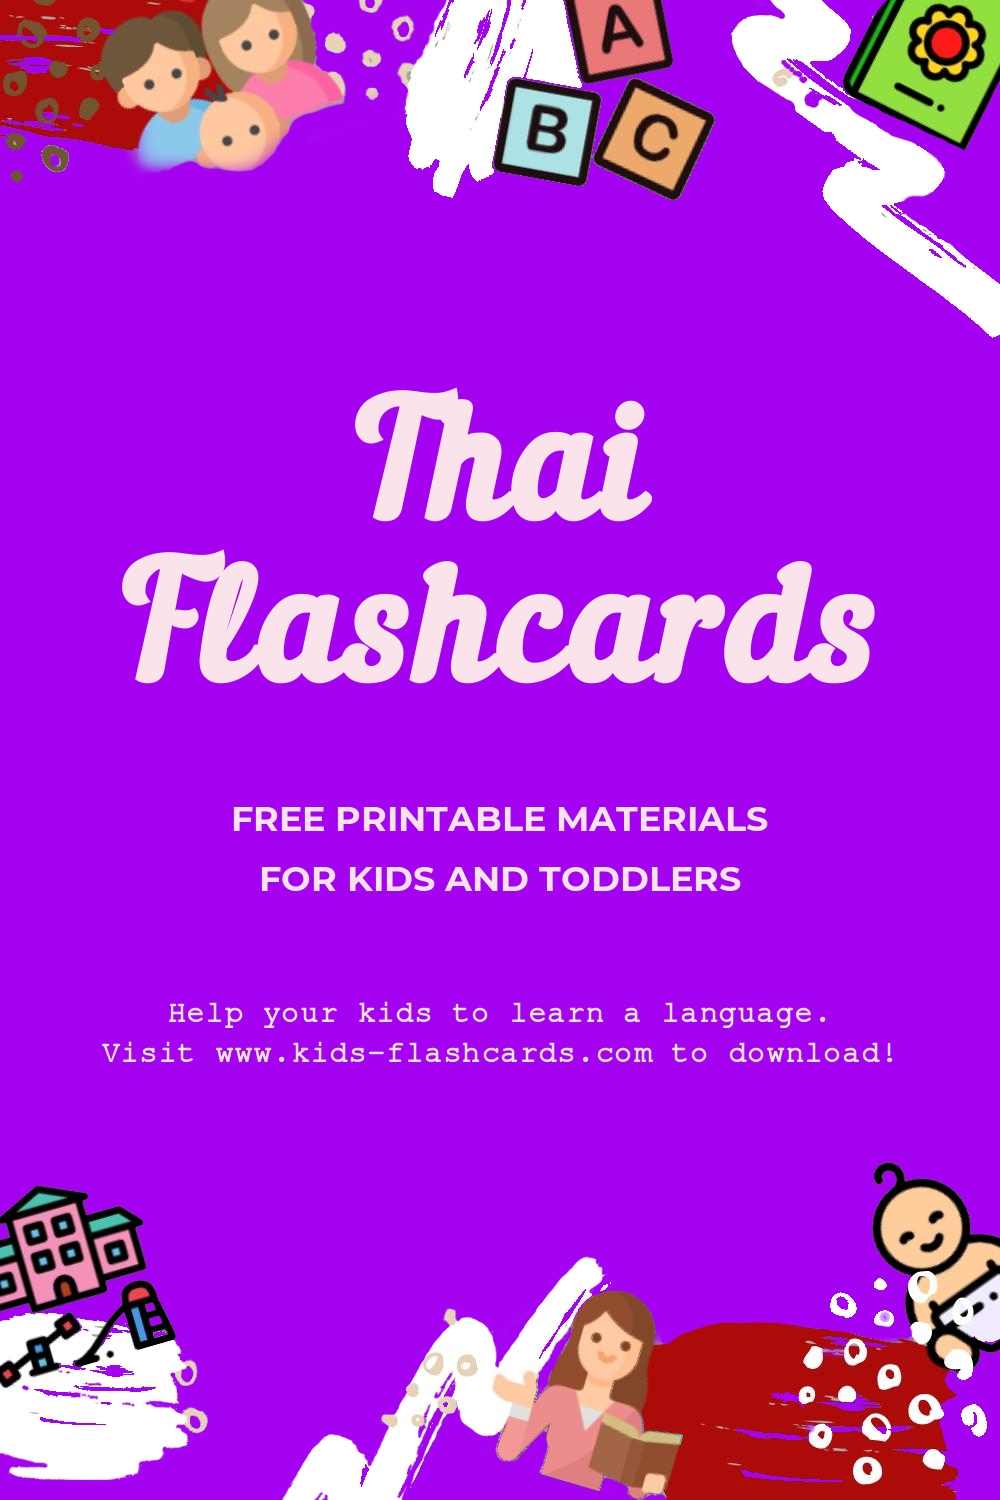 Worksheets to learn Thai language